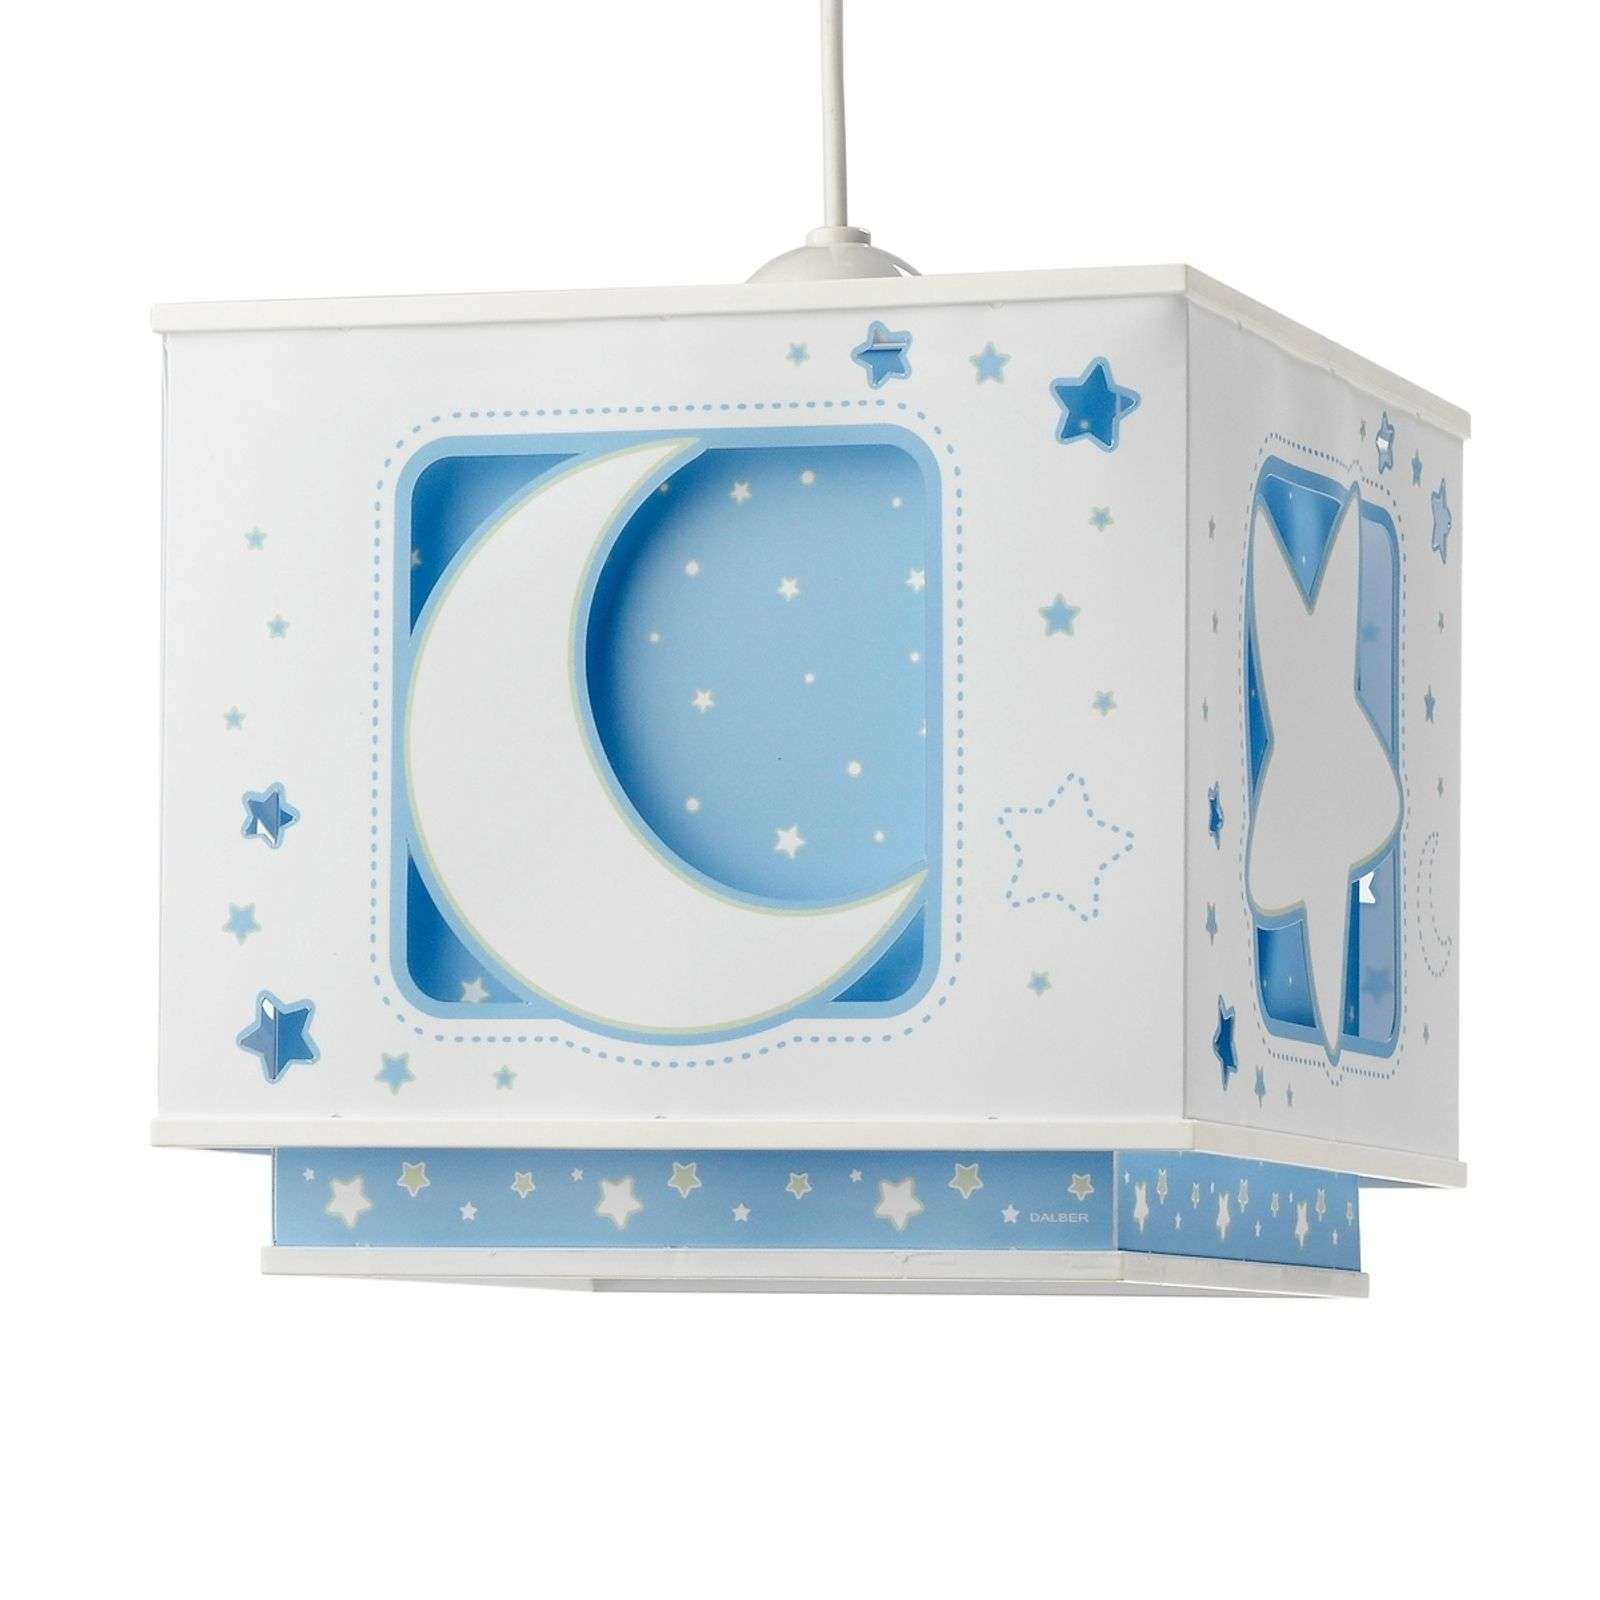 Suspension fluorescente NACHTHIMMEL bleue